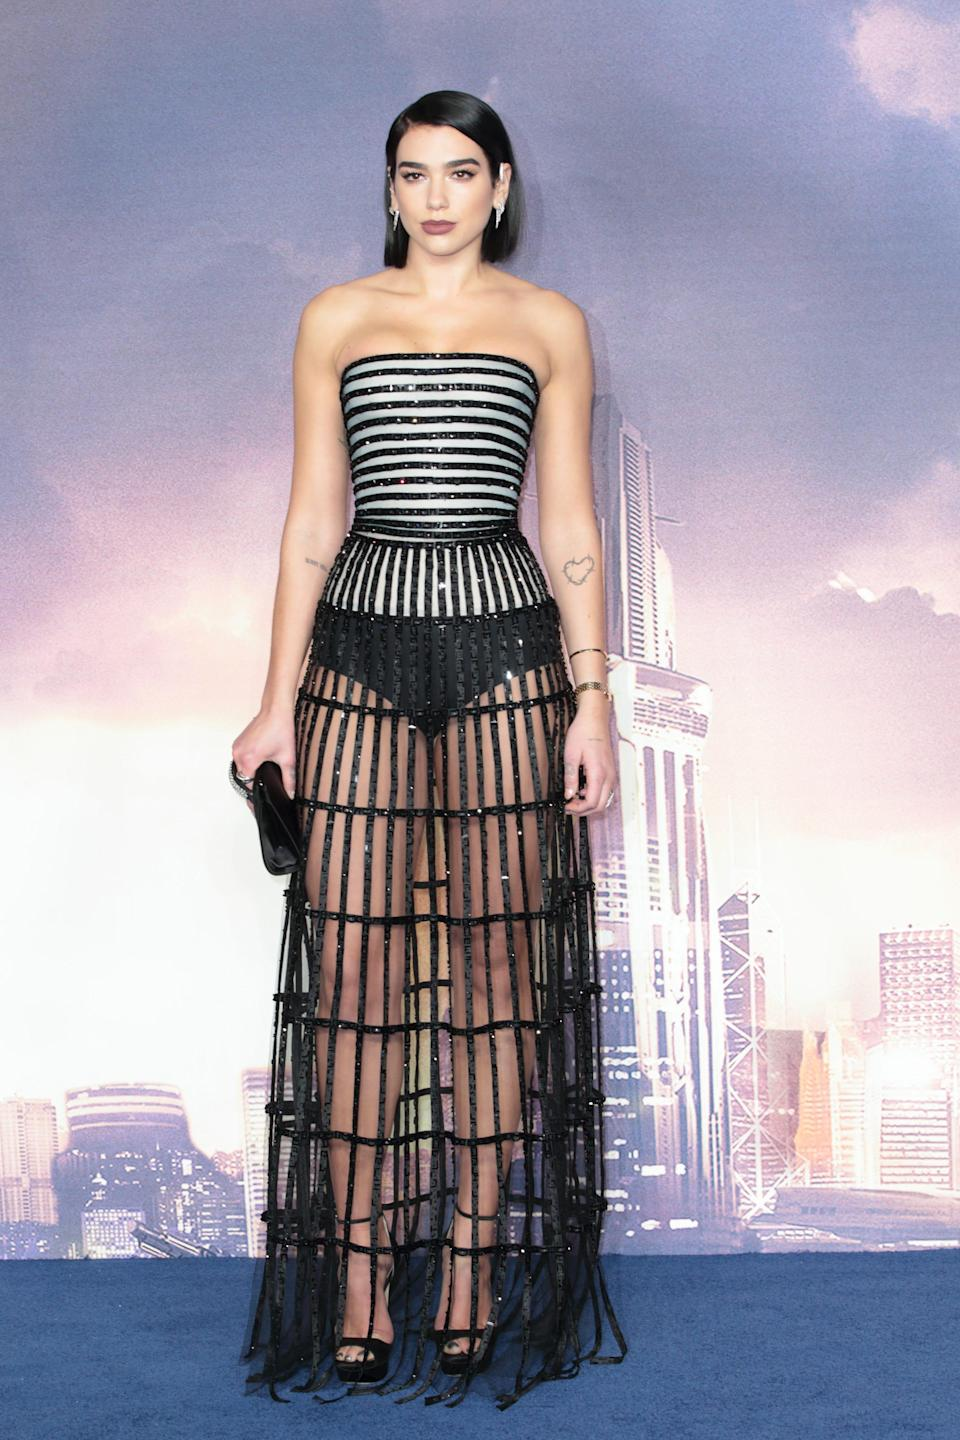 Dua Lipa stands in a black and white dress in front of a sky backdrop.